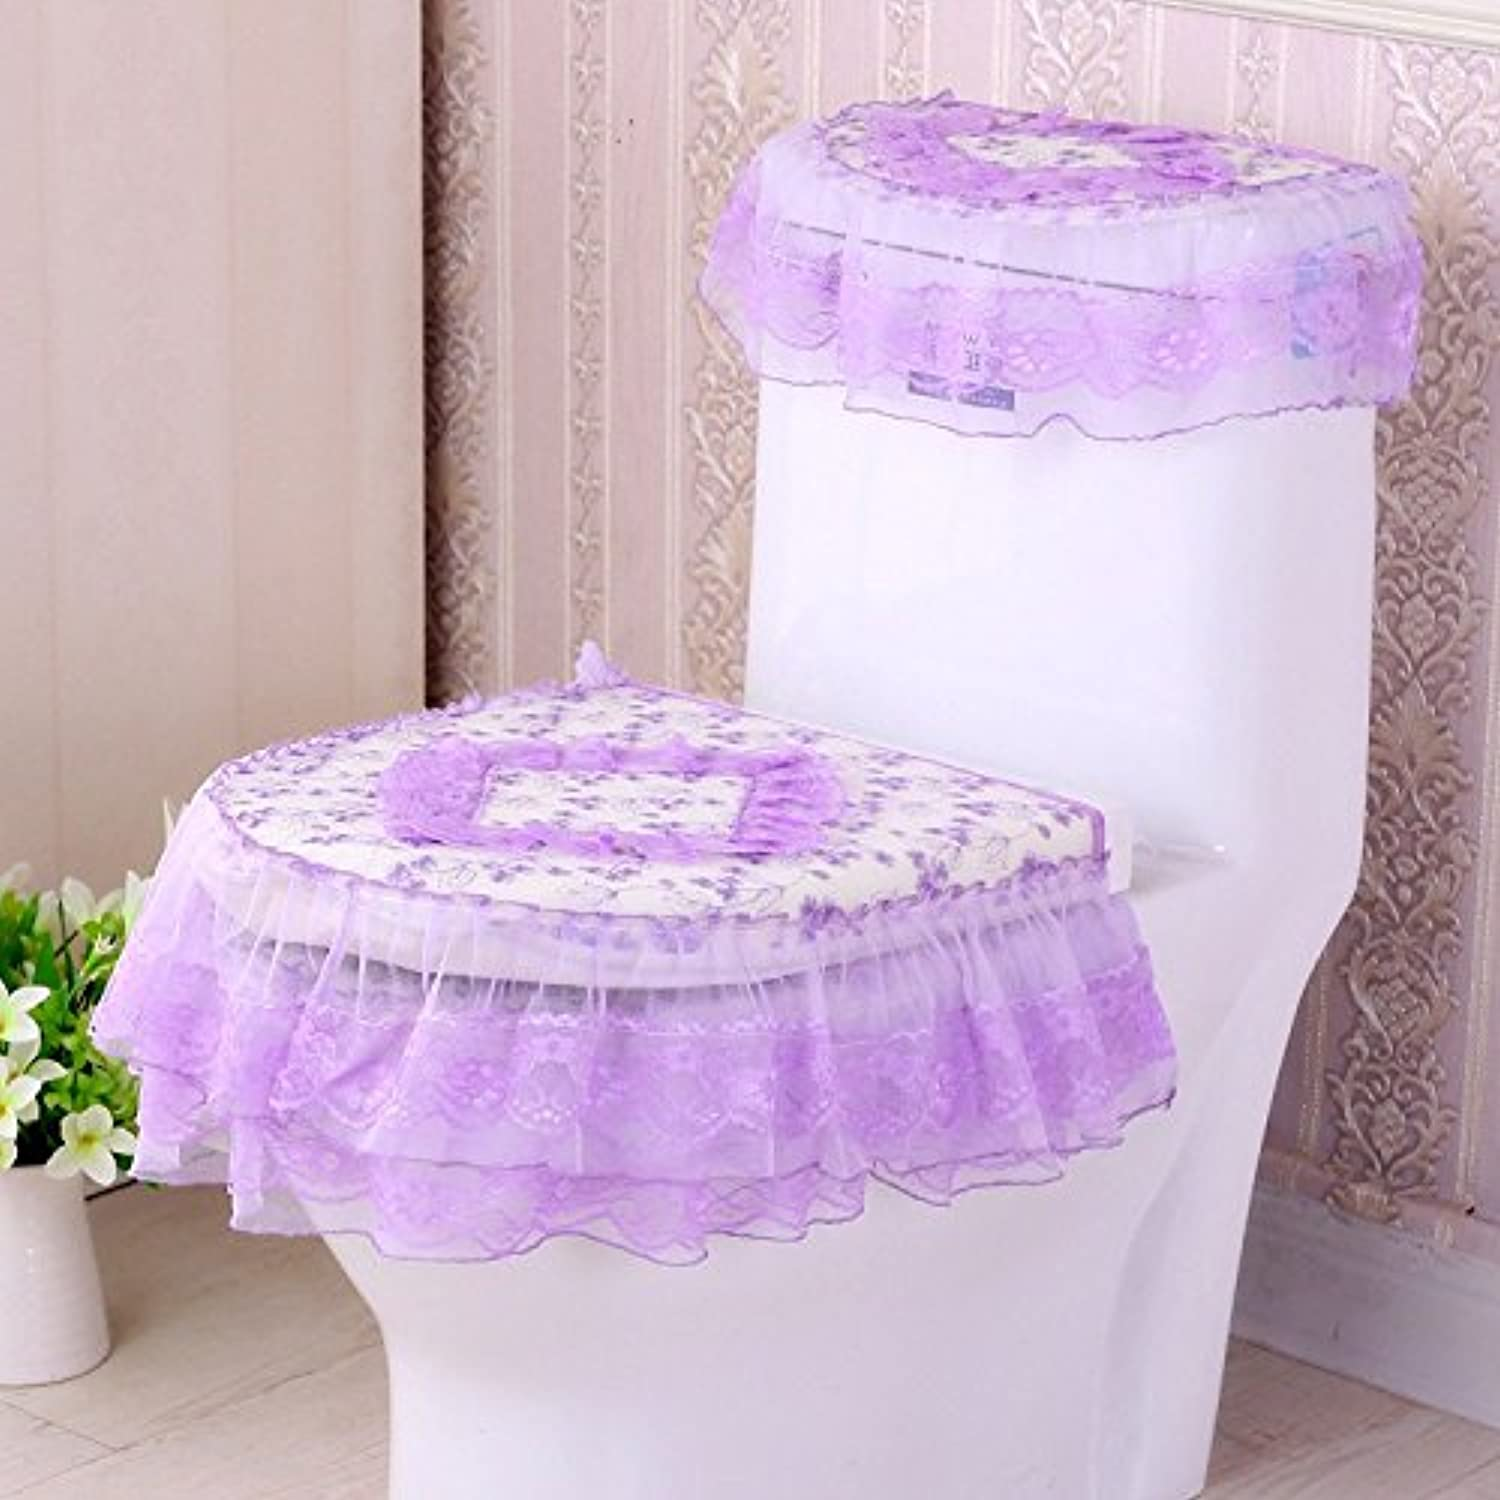 MKSFY Toilet Seat Cover 3-Piece Lace Fabric Zipper Waterproof Trumpet To Increase Cute Autumn And Winter Thickening, Green